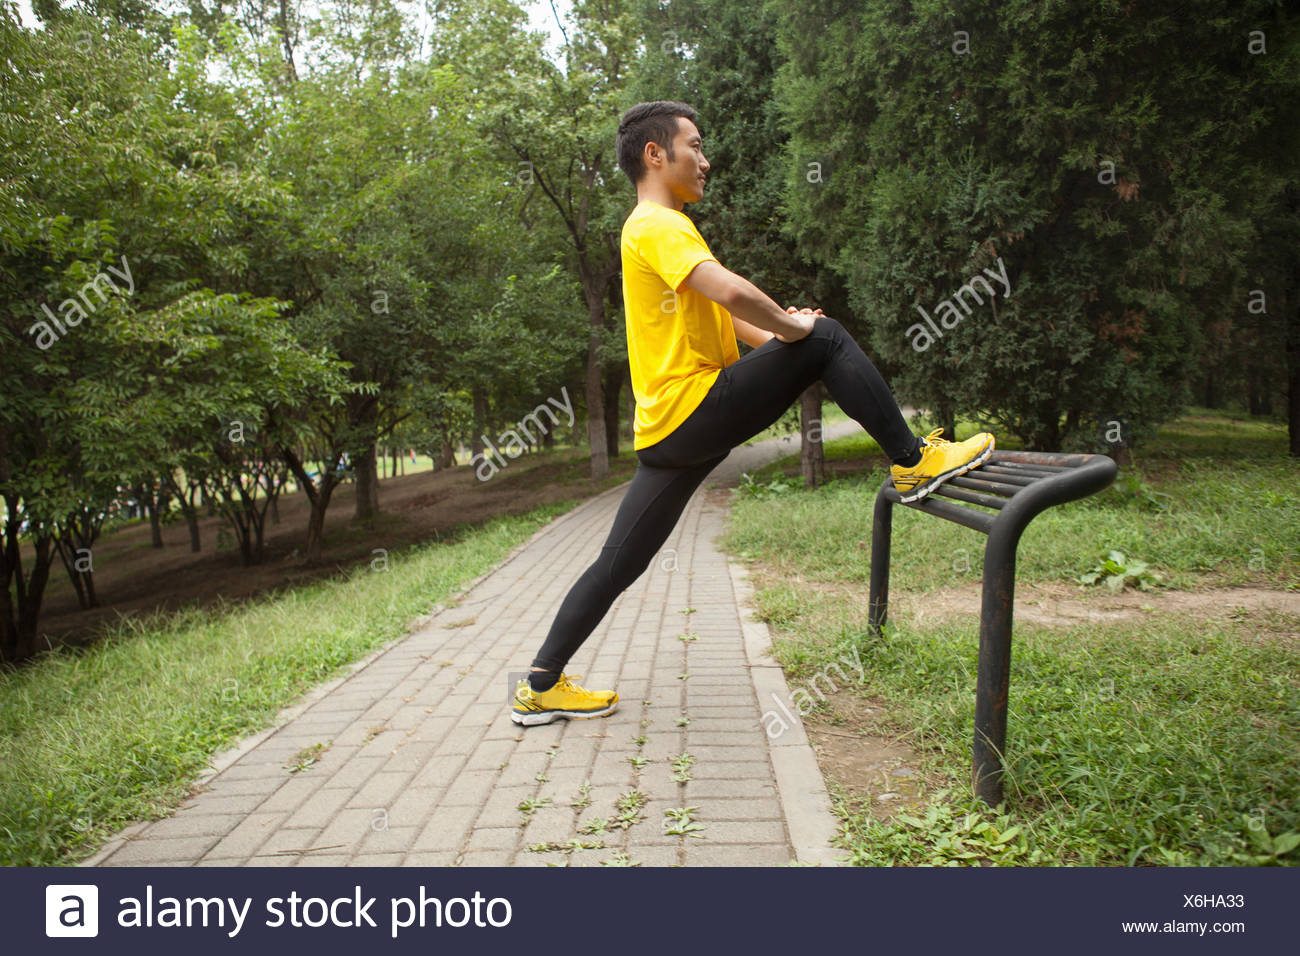 Young male runner warming up in park - Stock Image